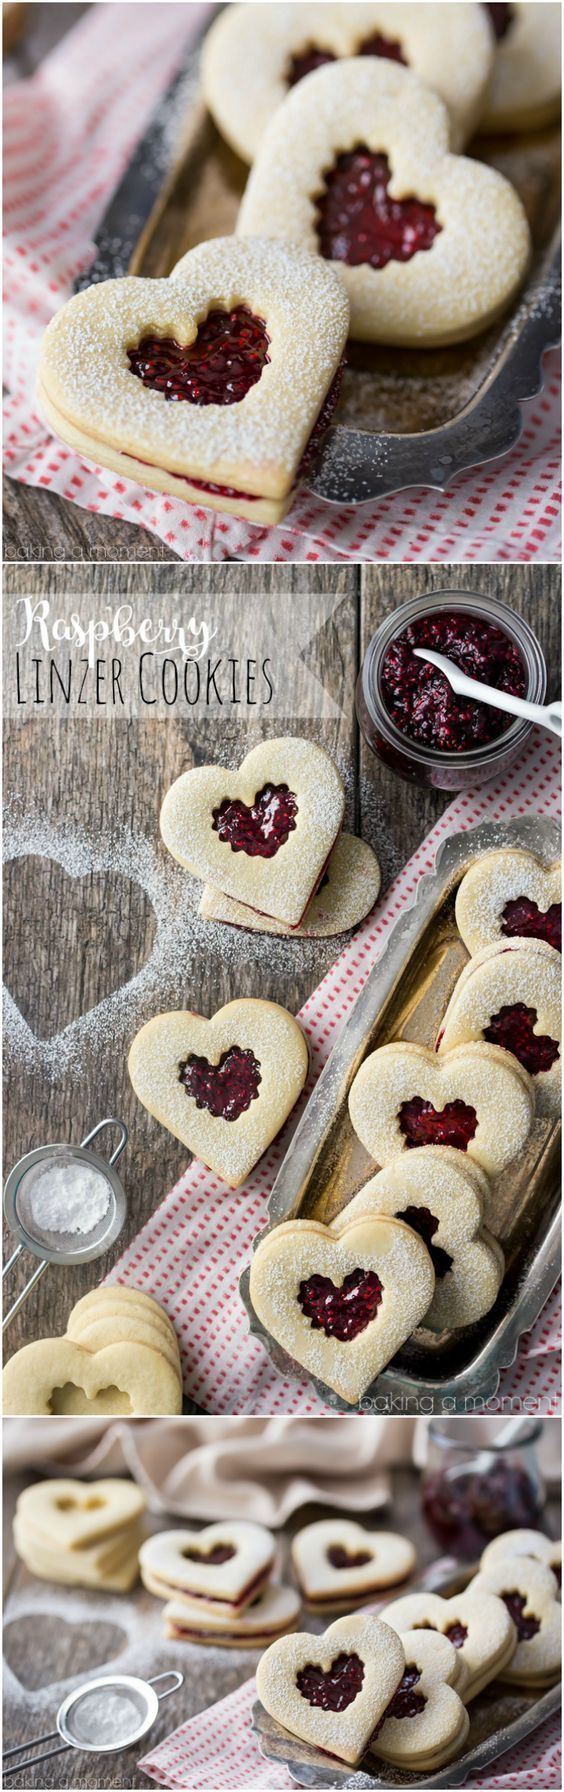 Raspberry Linzer cookies are the perfect addition to any tray of Christmas treats. #PANDORAloves